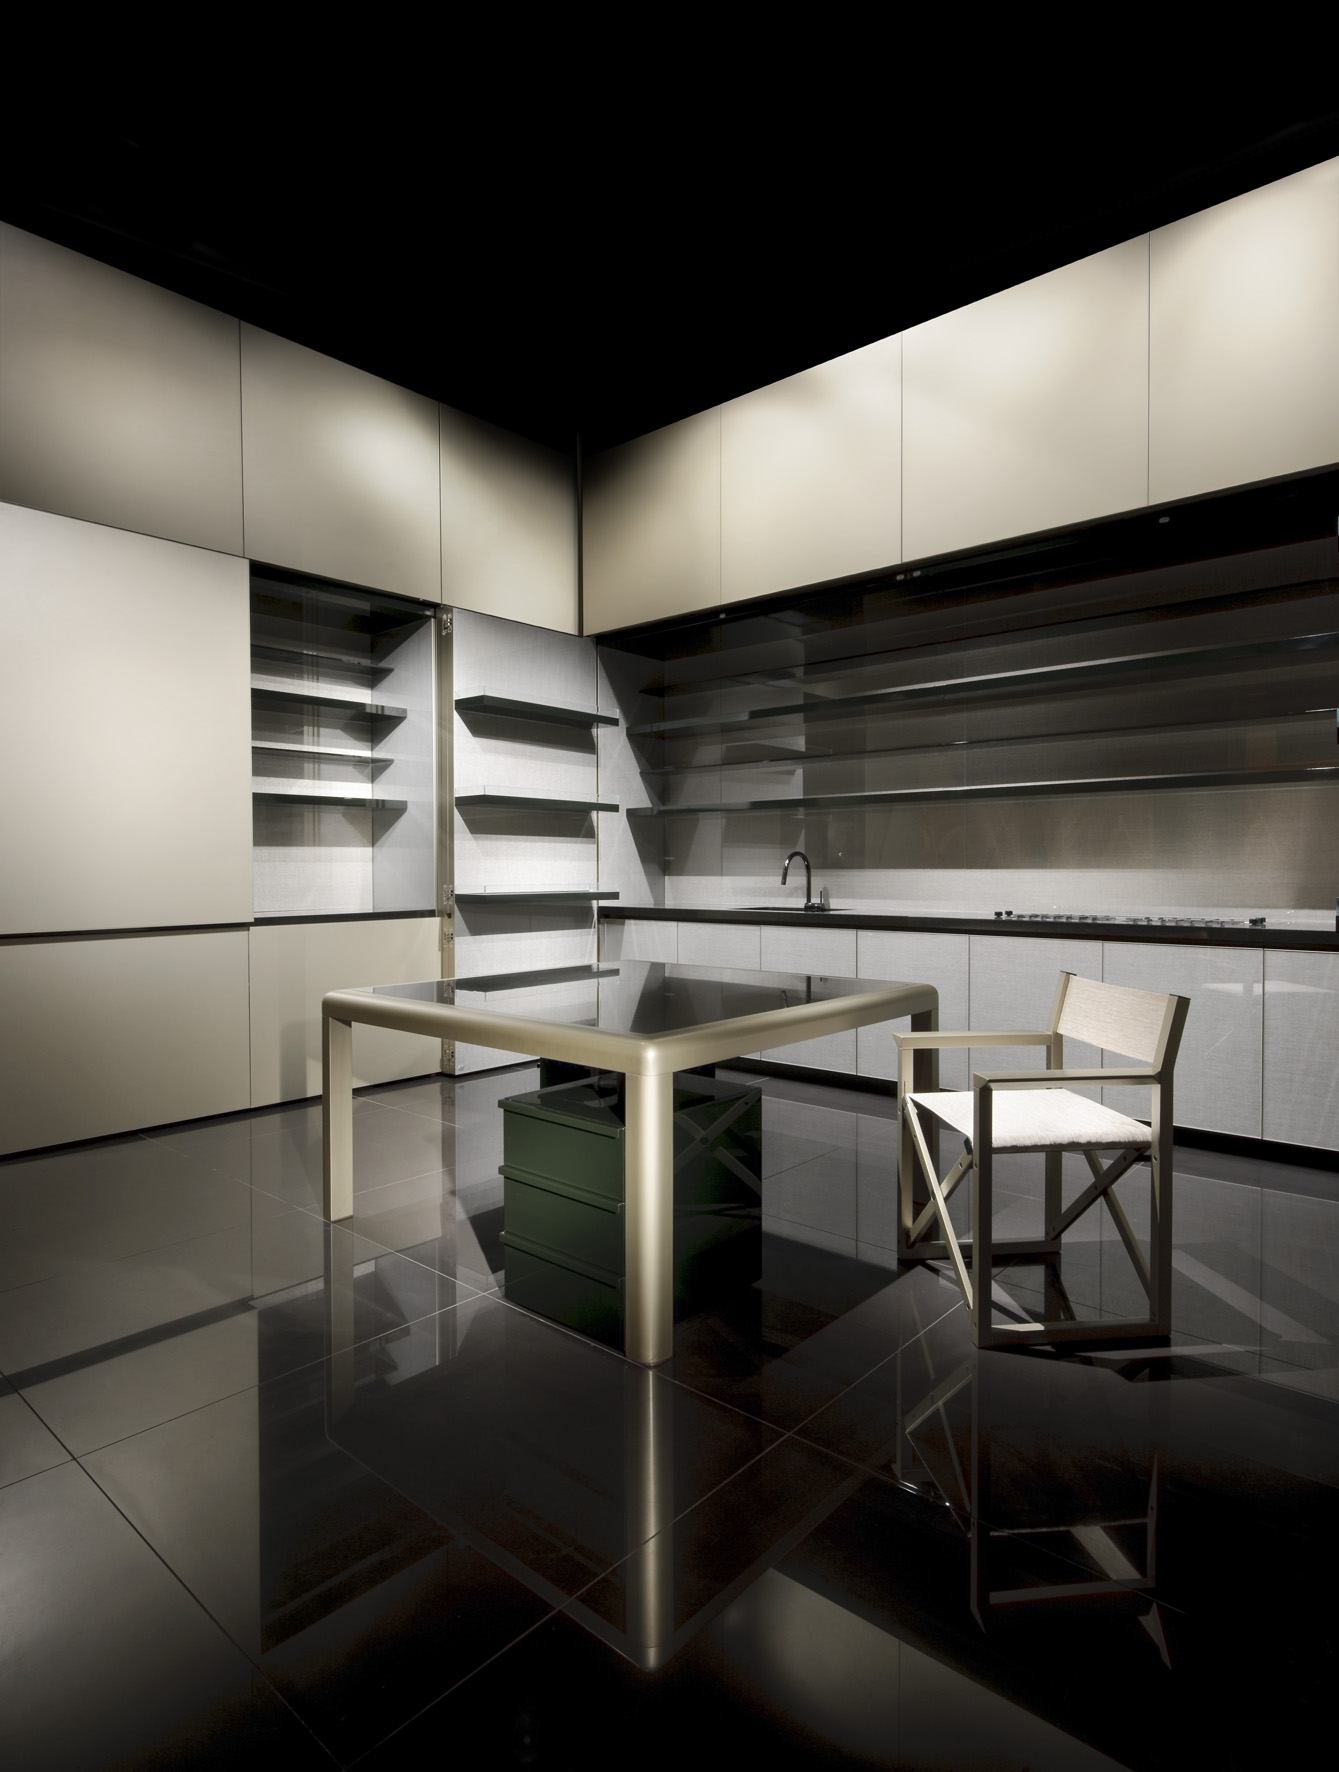 Disappearing sleek and polish kitchen design by armani casa 1